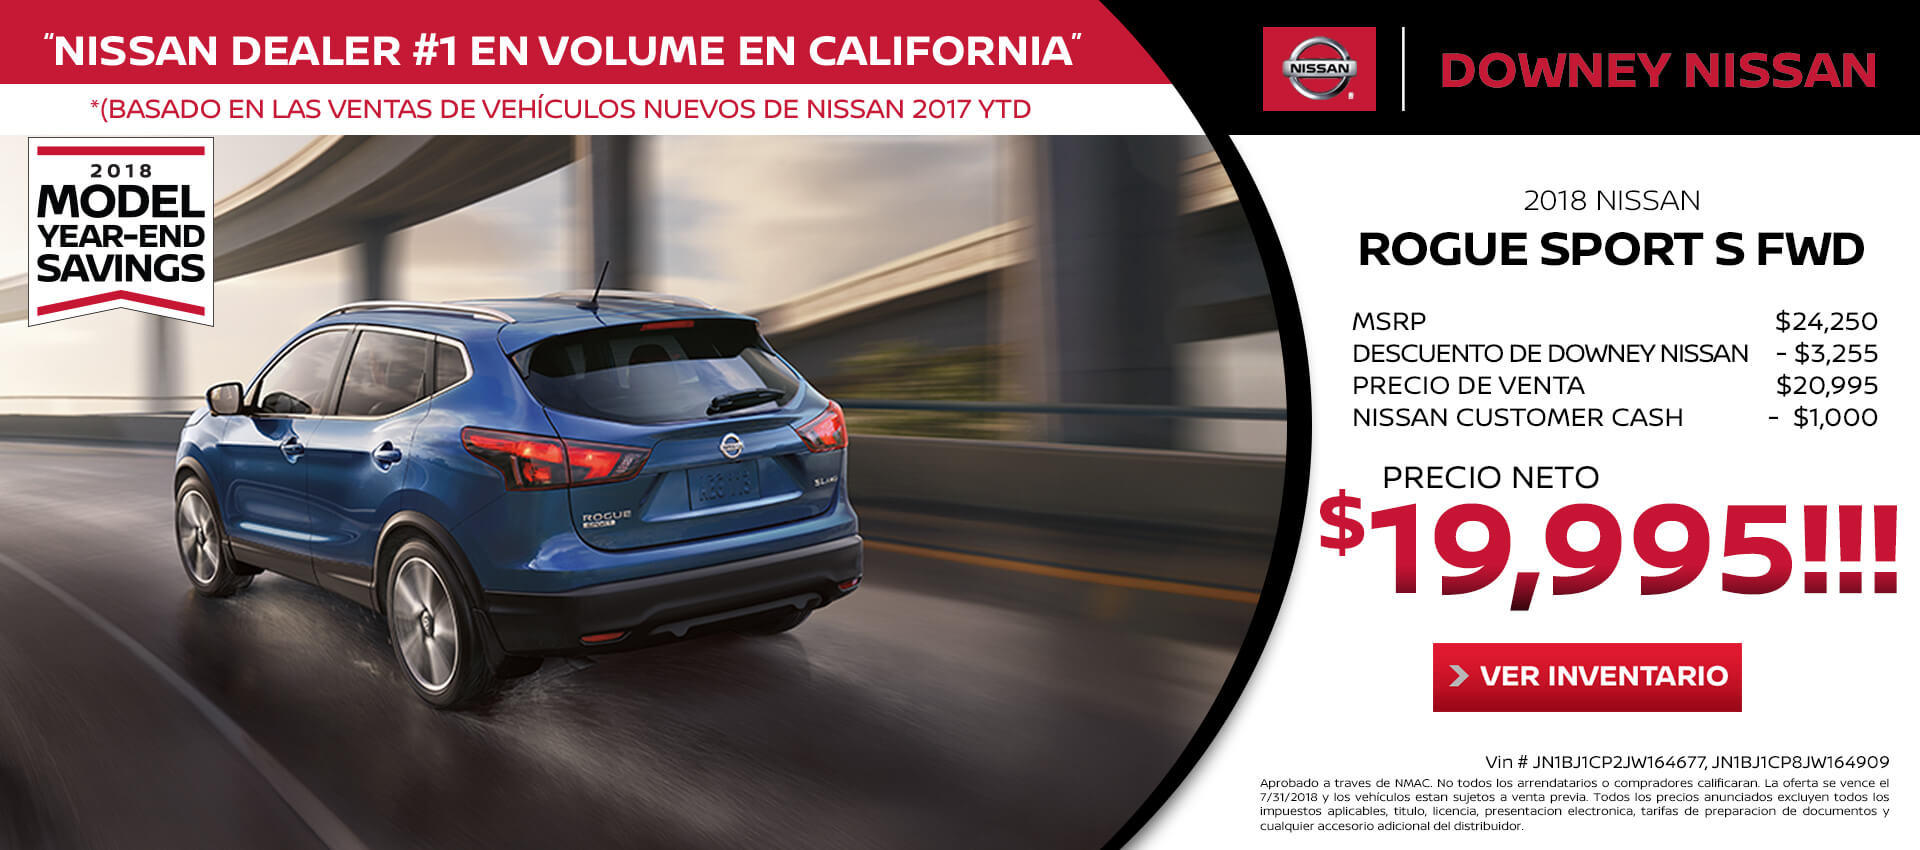 Rogue Sport - Purchase for $19,995